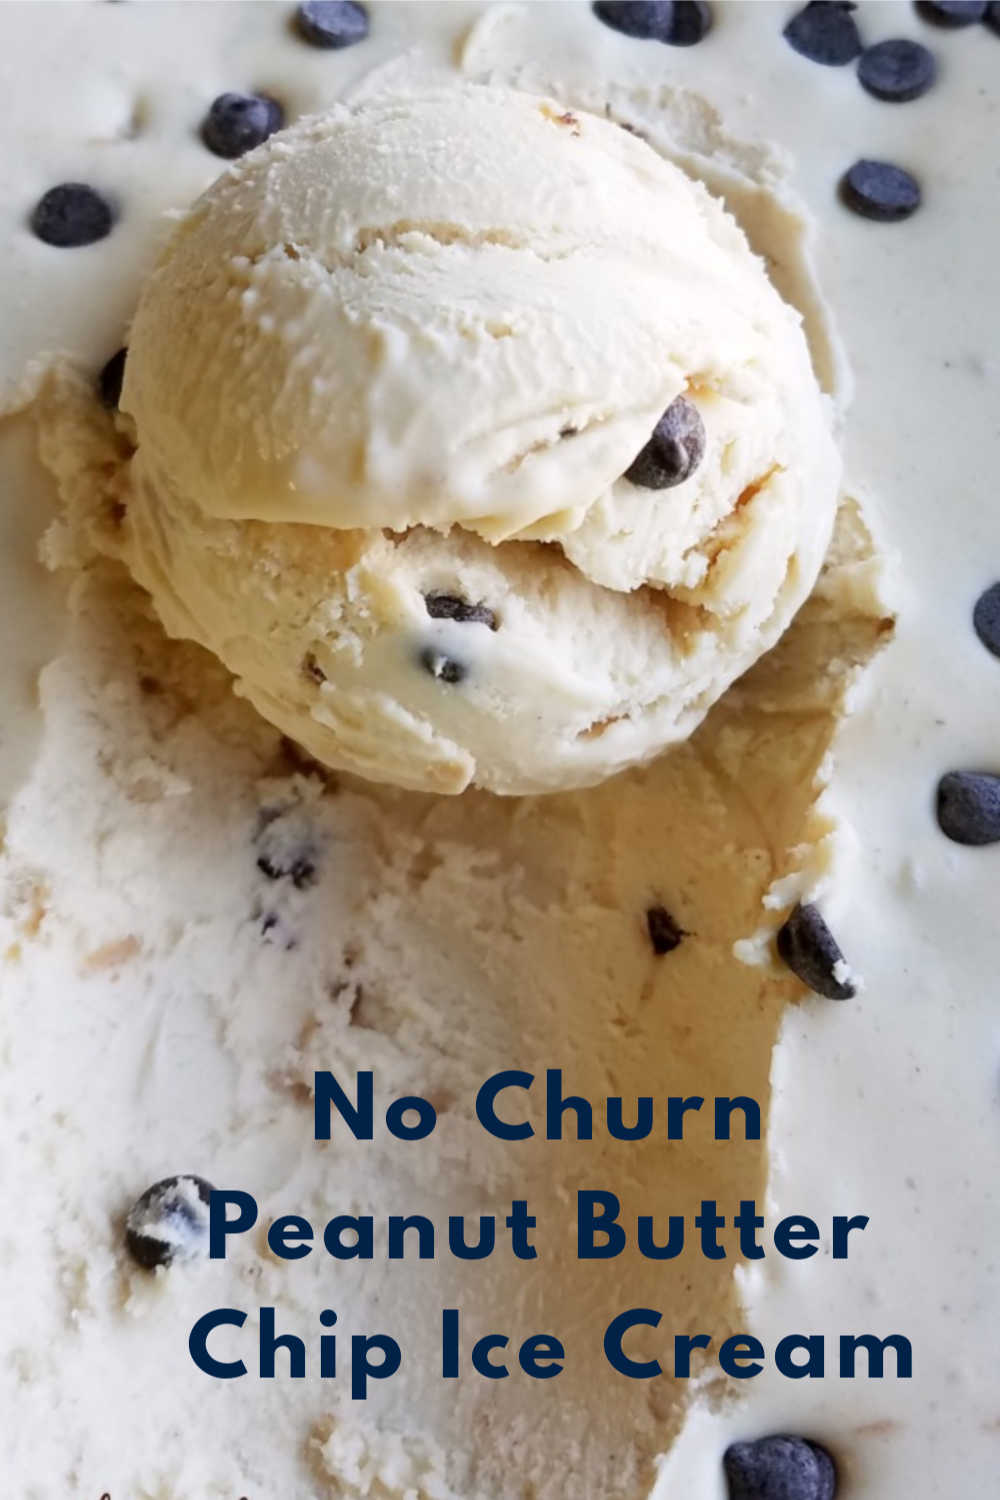 Smooth, creamy and oh so good! This no-churn ice cream is exploding with peanut butter flavor and is dotted with chocolate chips. It is almost too easy!